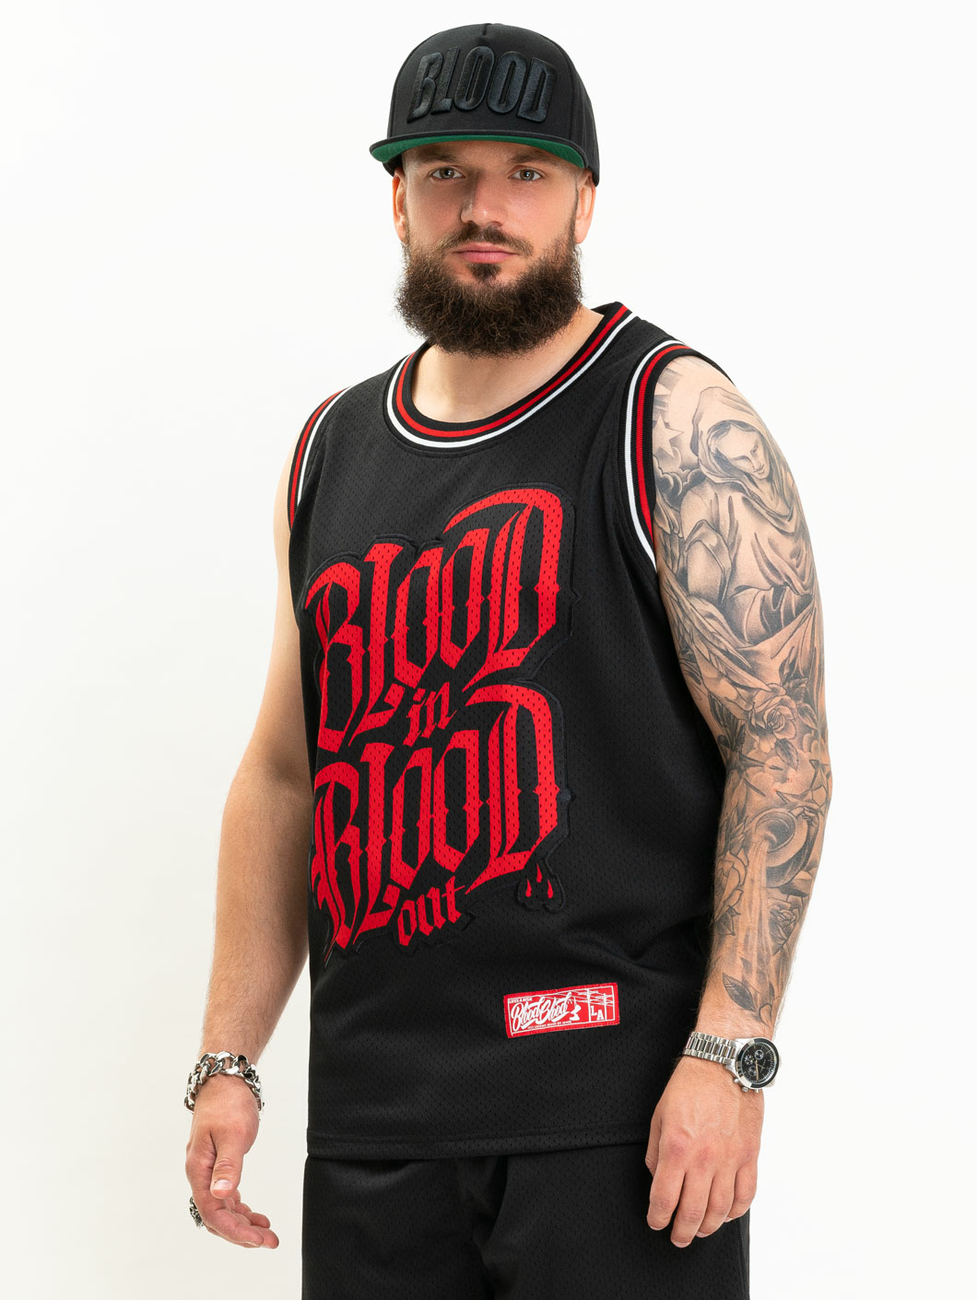 Blood In Blood Out Aguas Mesh Tanktop S